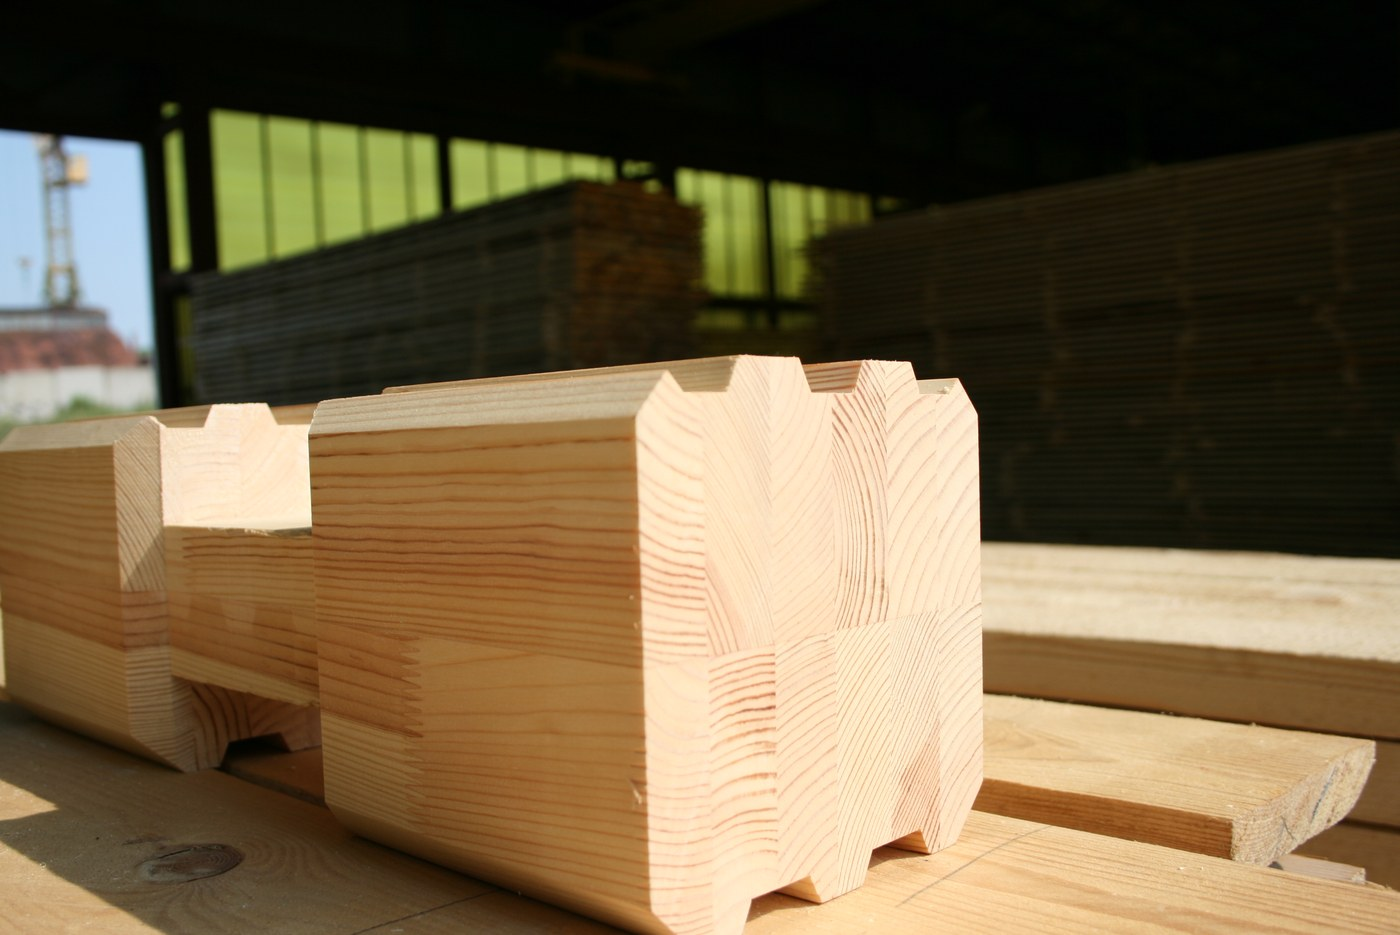 How to sell wooden goods to France?